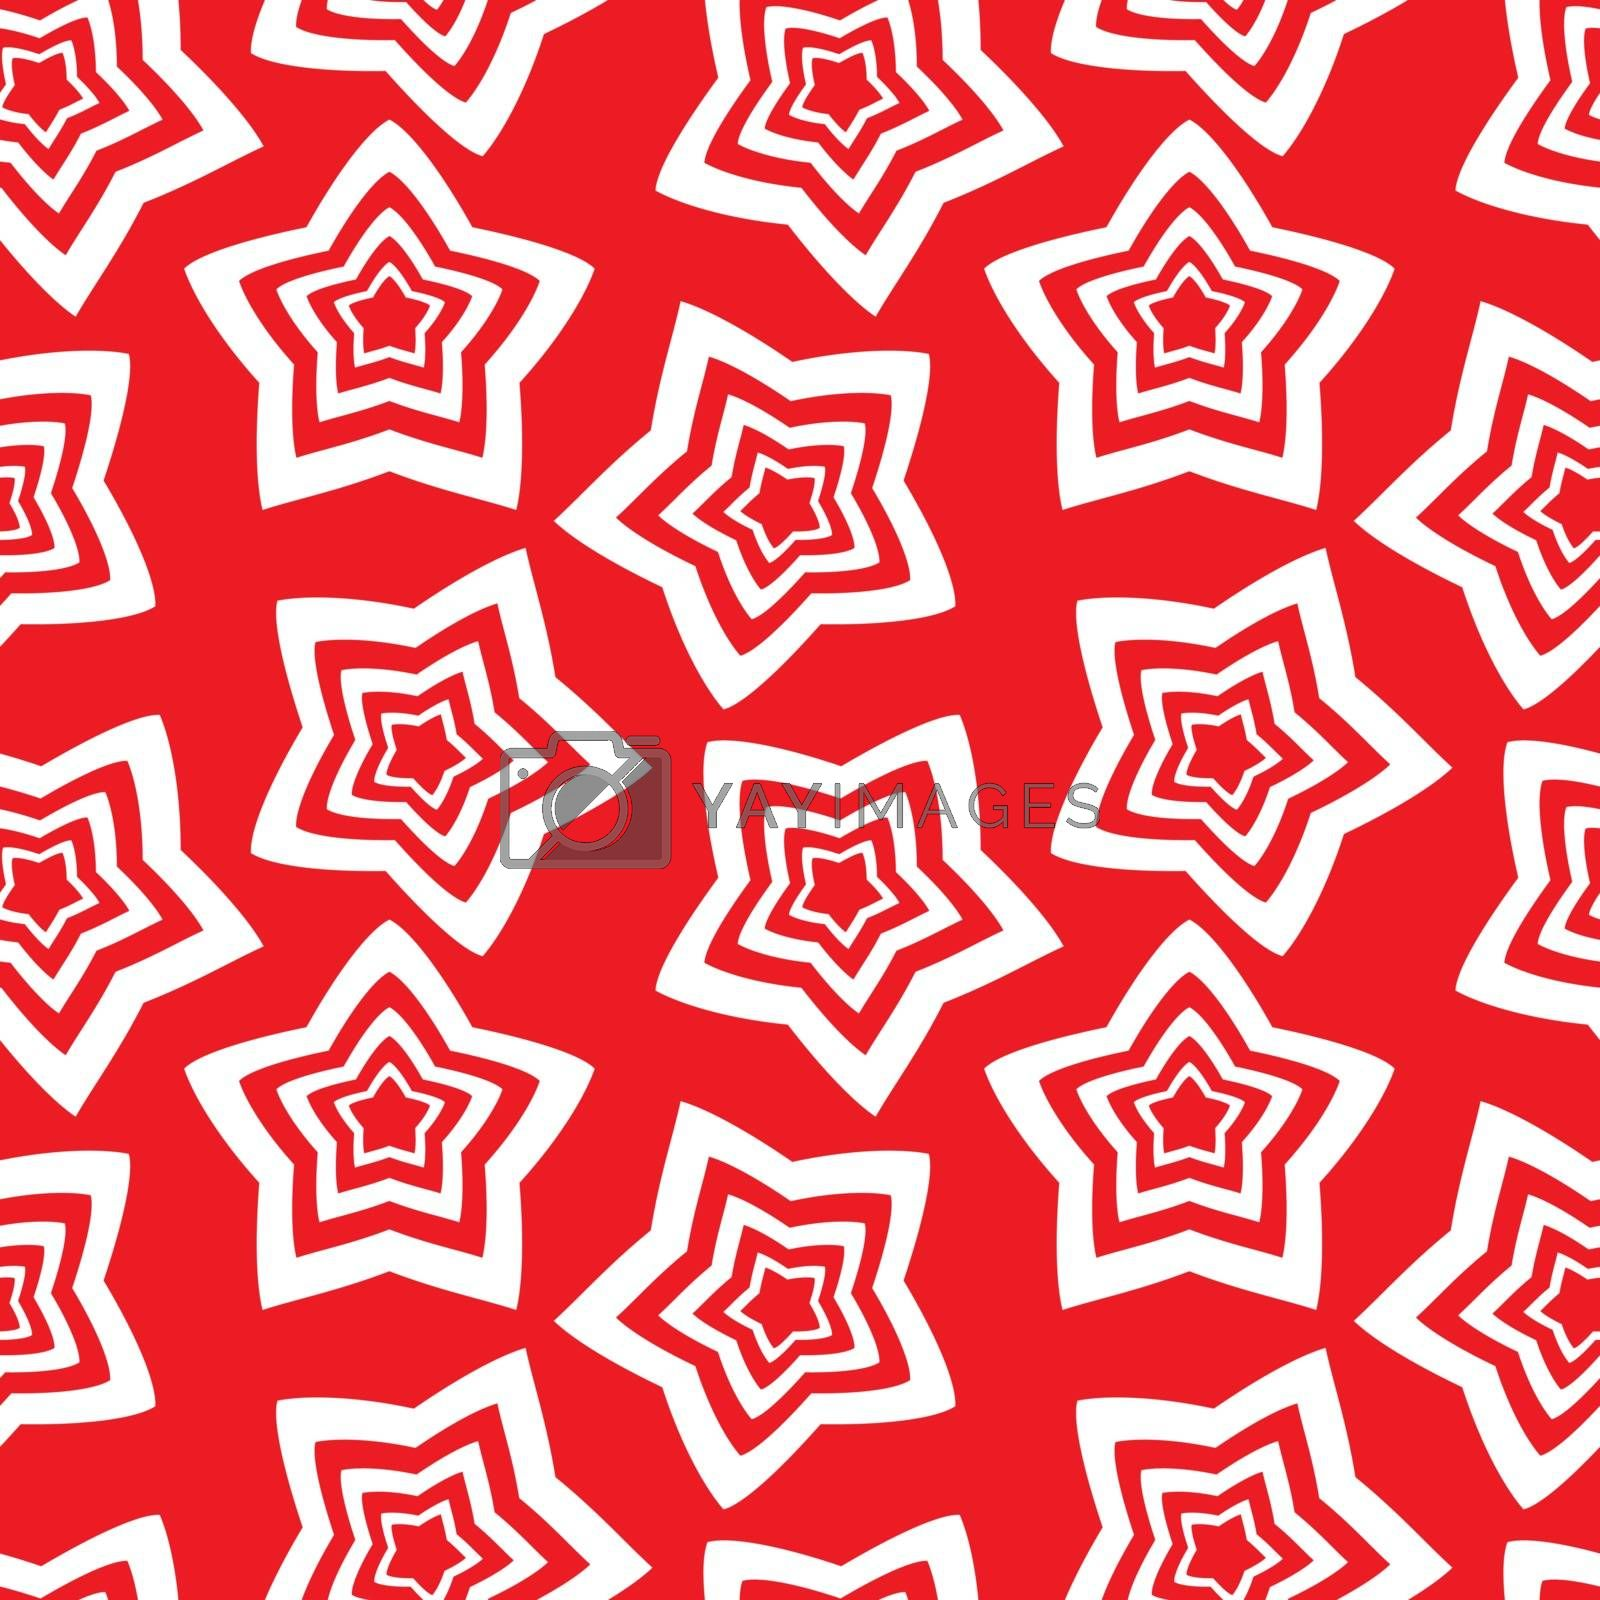 Seamless vector wallpaper. repetitive print with stars